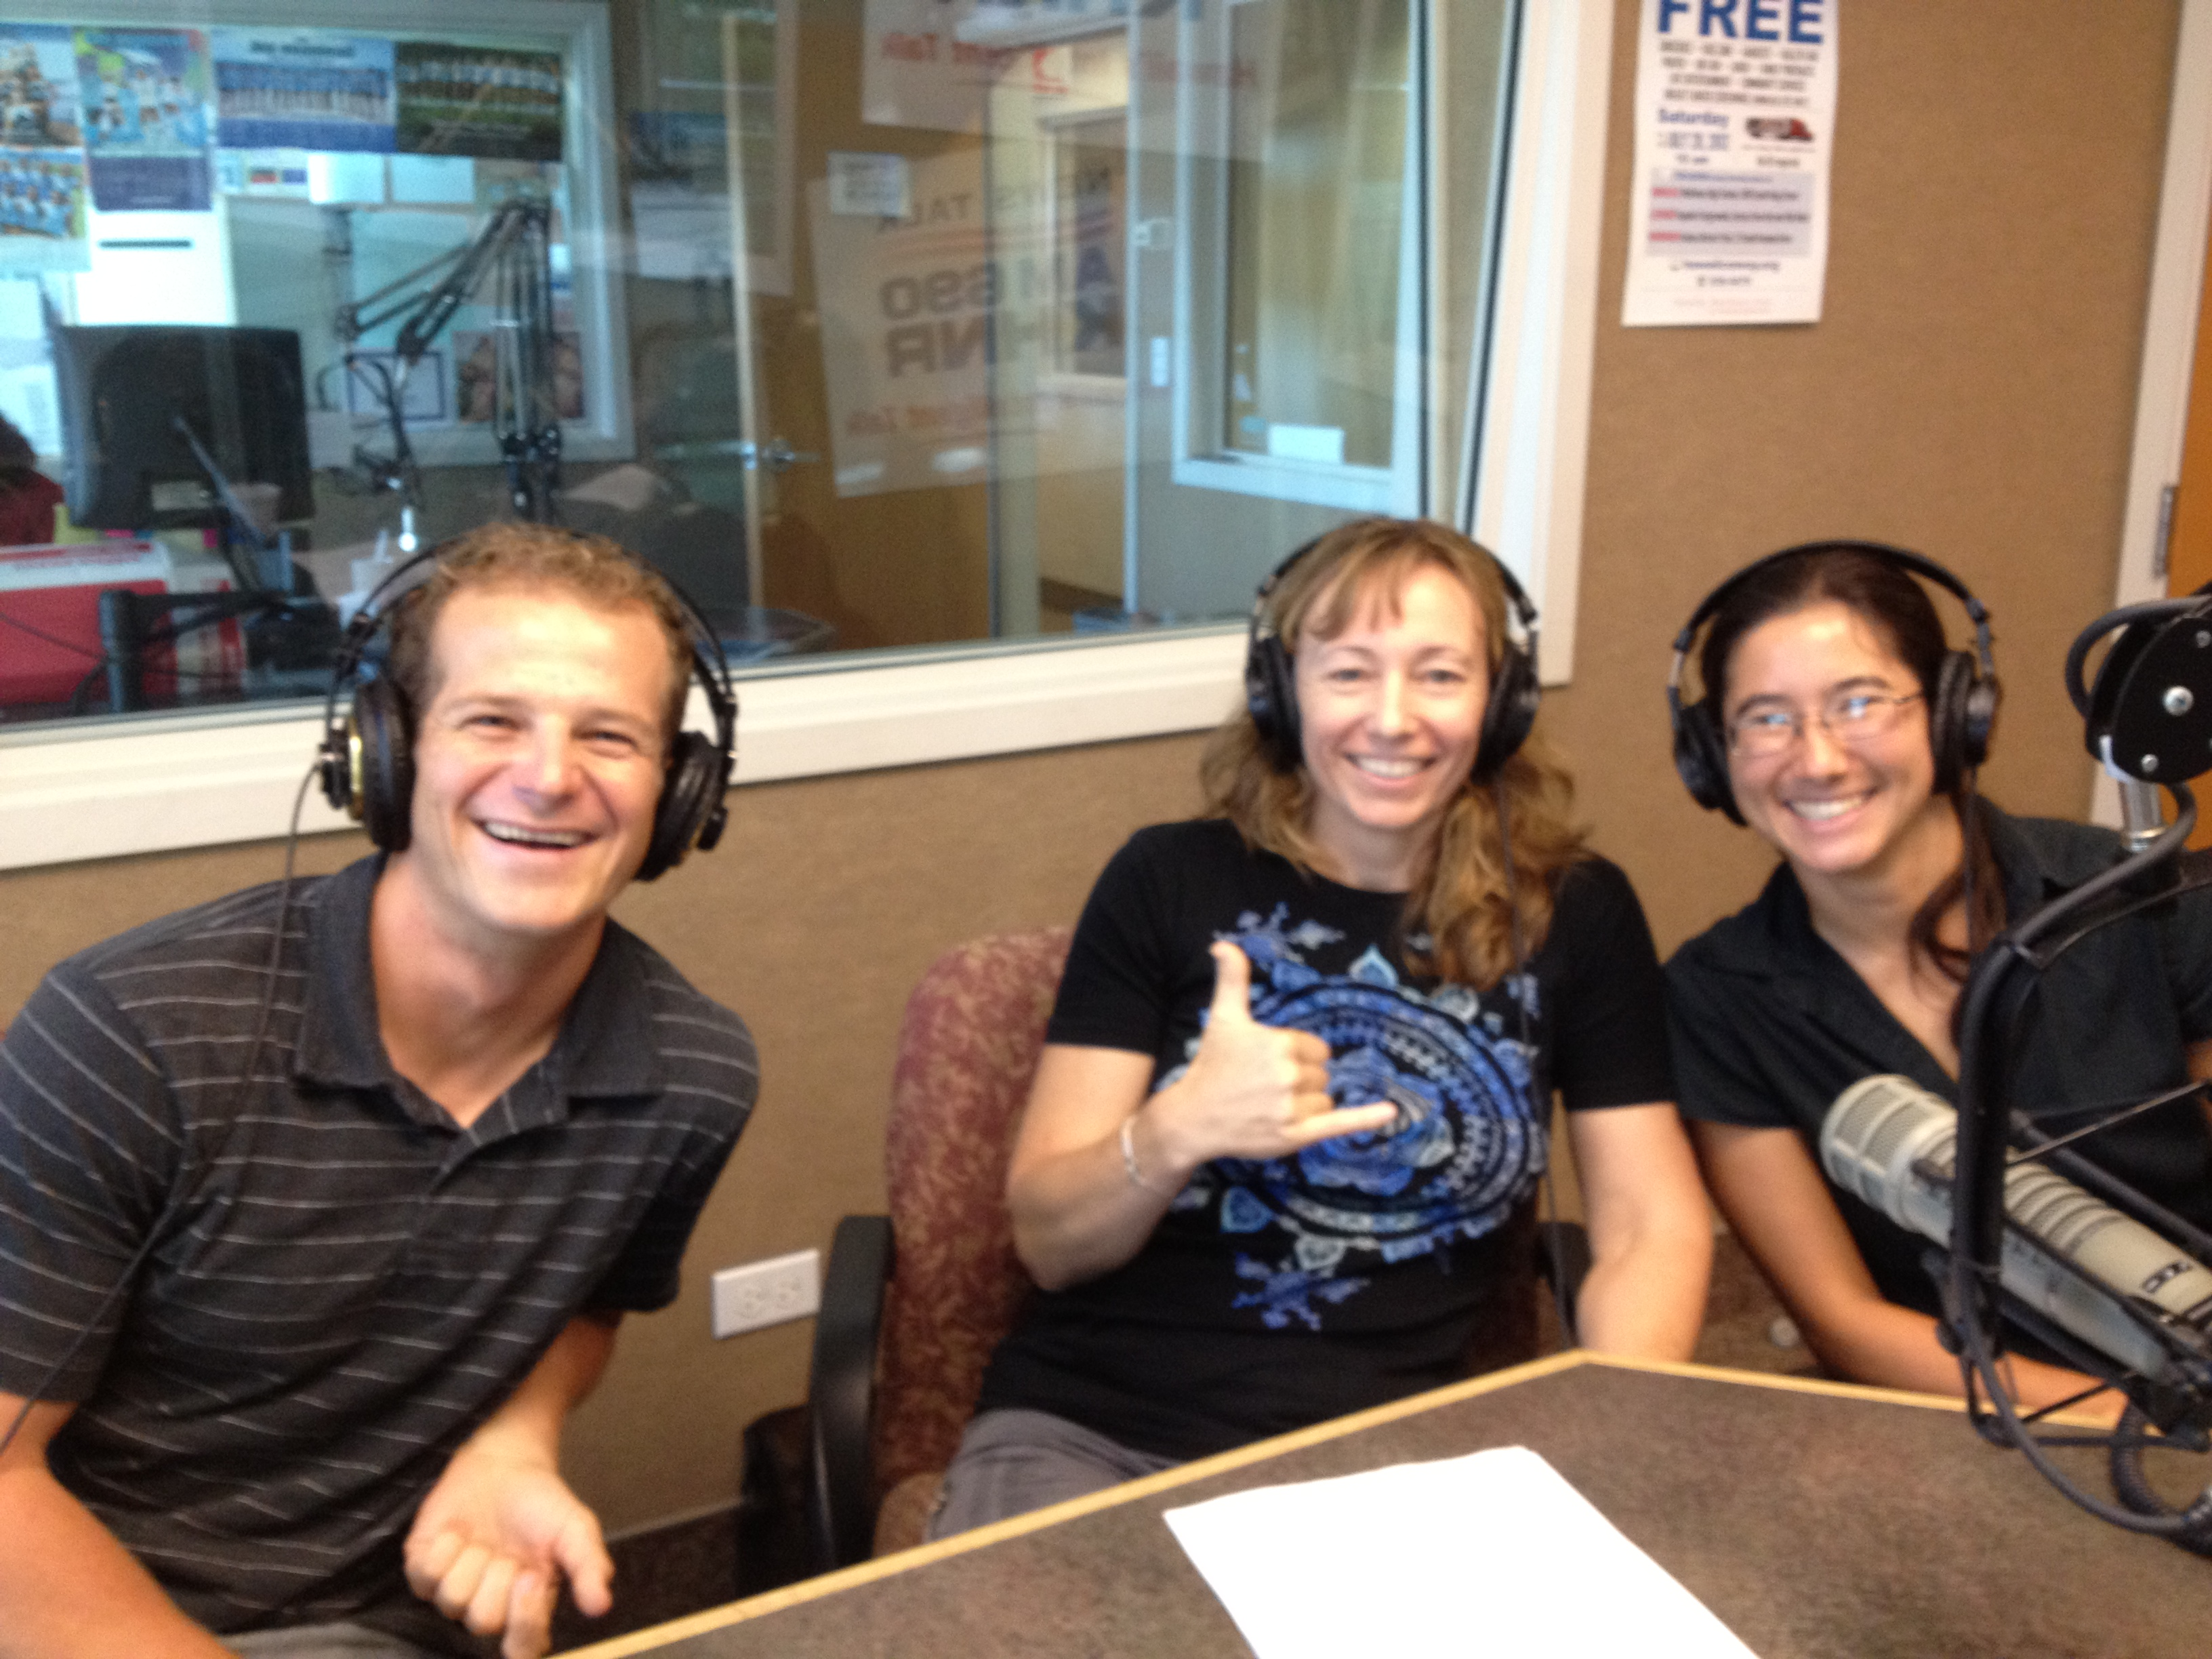 Radio guests Daniel Wagner, Judy Lemus, and Megan Onuma.